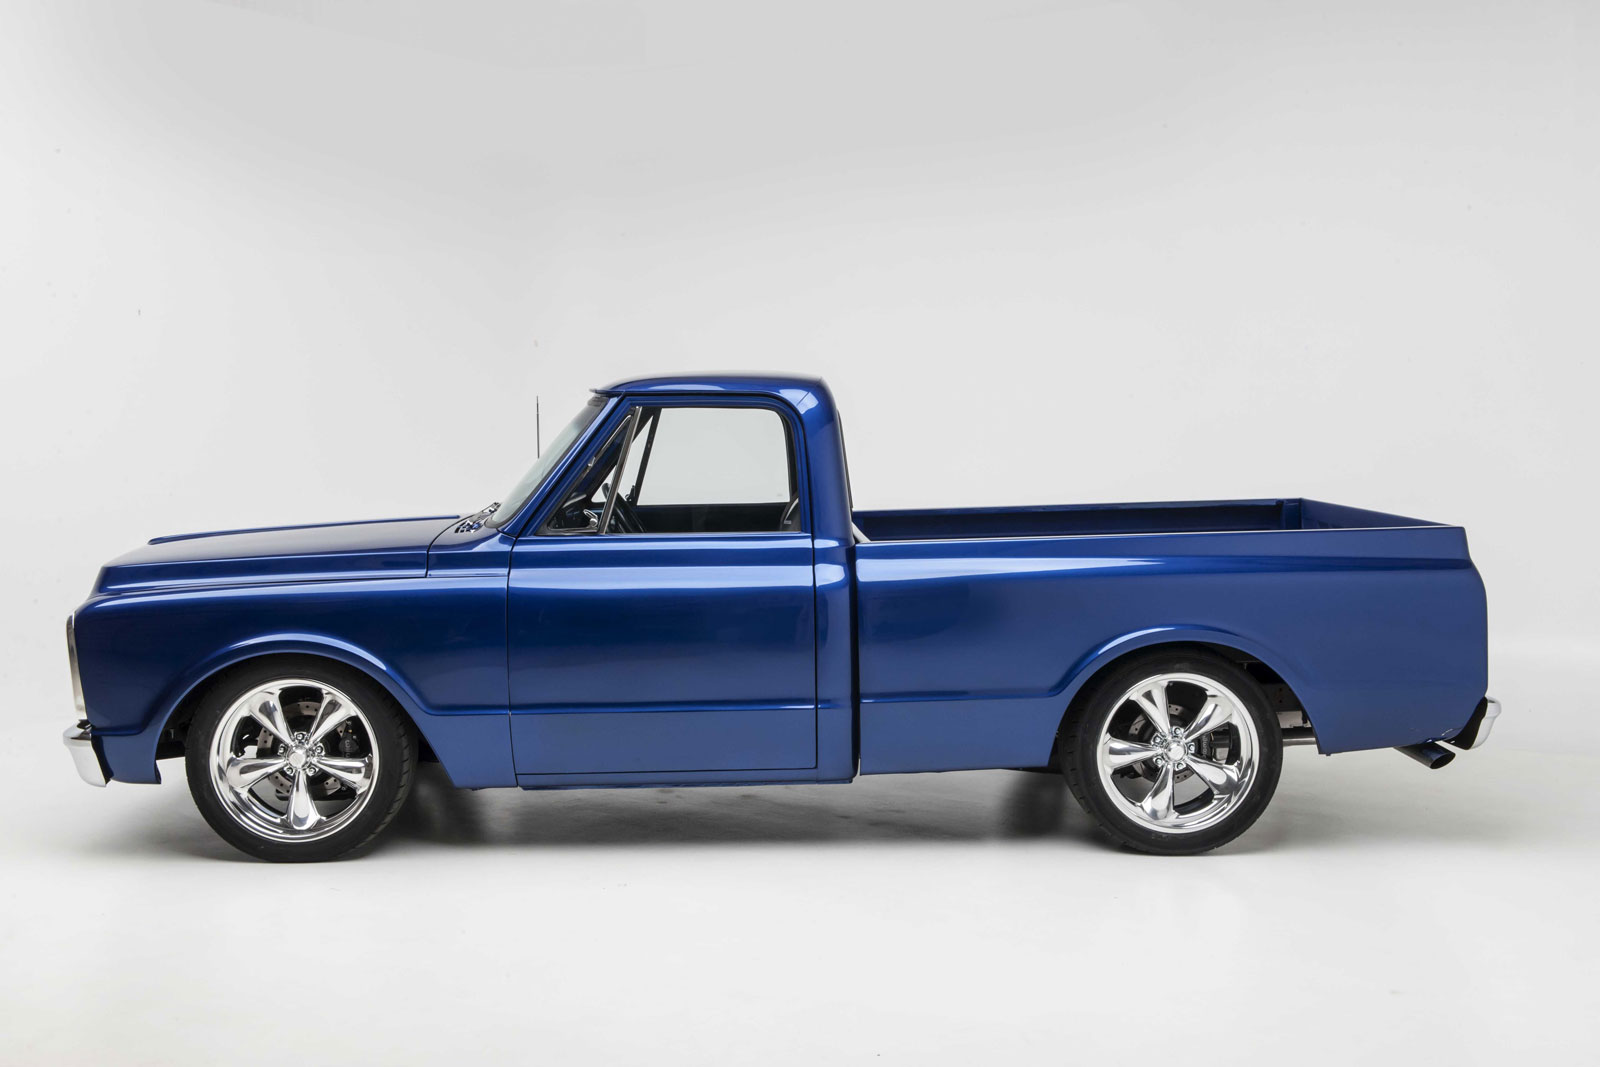 1972 Chevrolet C-10 Pickup by Dorsett Speed Shop